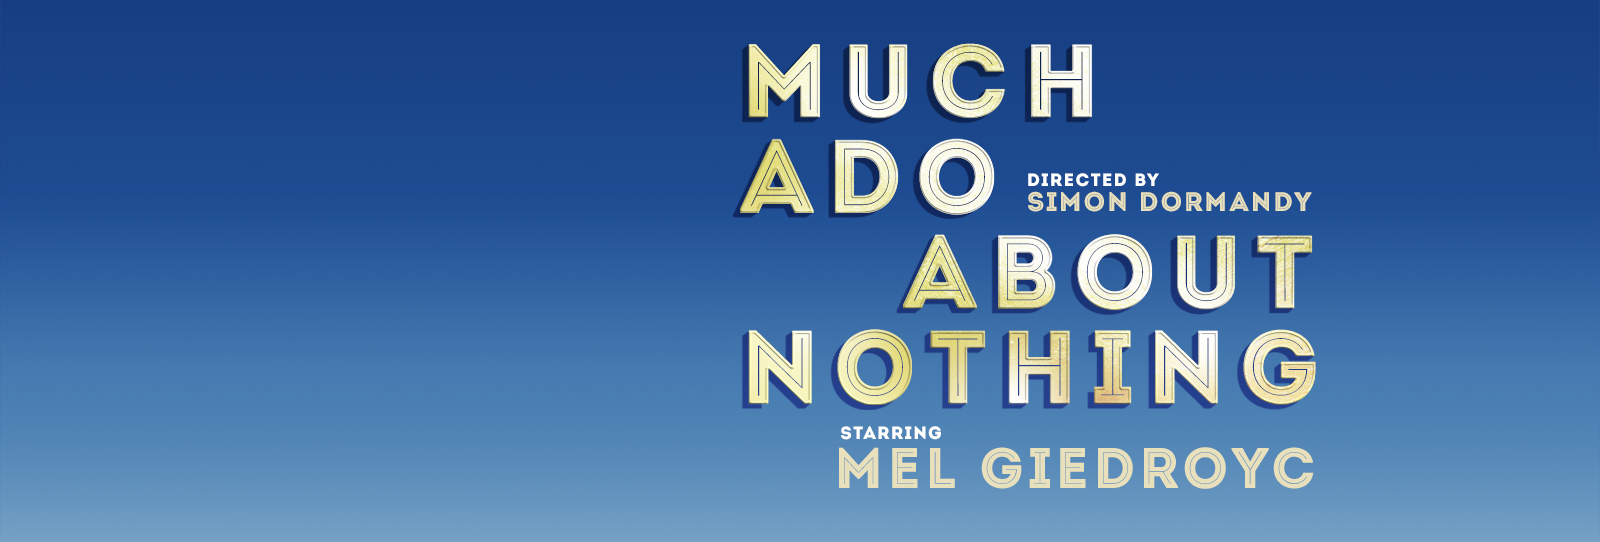 MUCH ADO ABOUT NOTHING COMMUNITY CHORUS AUDITIONS